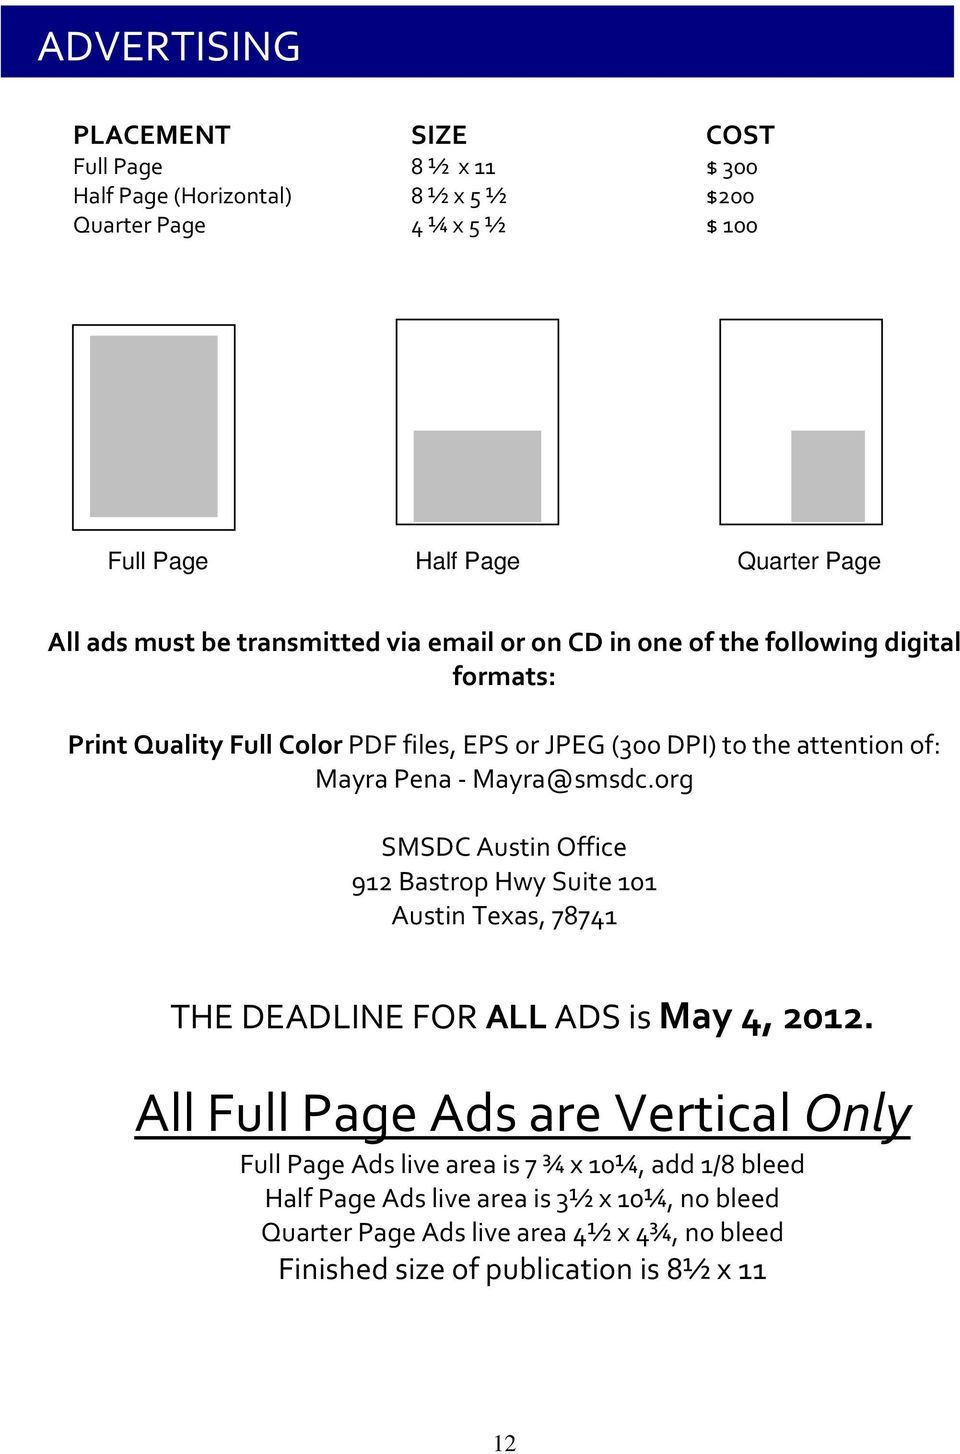 Mayra@smsdc.org SMSDC Austin Office 912 Bastrop Hwy Suite 101 Austin Texas, 78741 THE DEADLINE FOR ALL ADS is May 4, 2012.